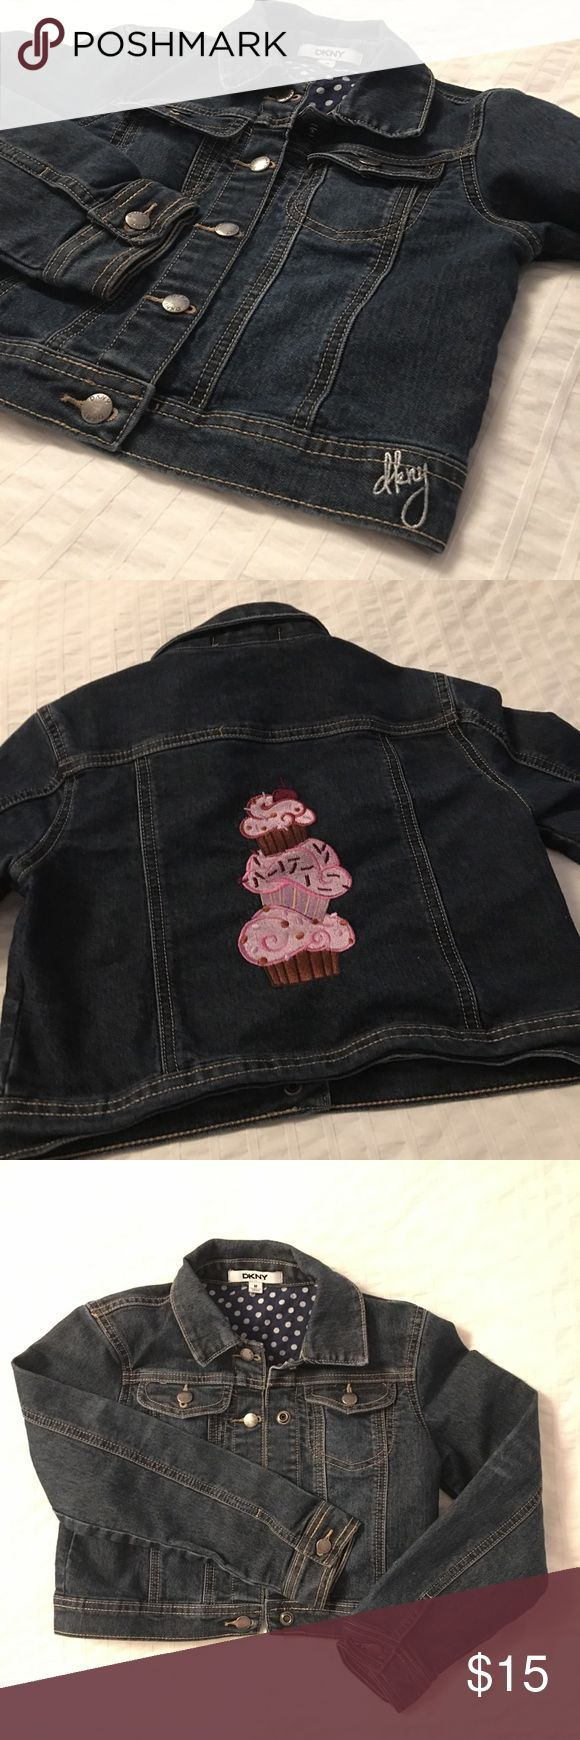 """💖 Girl's DKNY Jean Jacket Super sweet jean jacket for a young girl, with embroidered cupcakes on the back! 😍 Put your cutie in some bright skinny jeans and flats and a tshirt with this jean jacket and she's looking adorable! Hardly worn, clean and in LIKE NEW, EXCELLENT condition. 💗  👔Materials 100% Cotton  📏Size/Measurements M (Girl) • Shoulder to Hem: 13"""" • Arm Length: 19.5"""" • Pit to Pit: 14""""  🌟Bundle 2 or more items and save 15%!  📸 Follow me on Instagram @cubbycreekboutique DKNY…"""